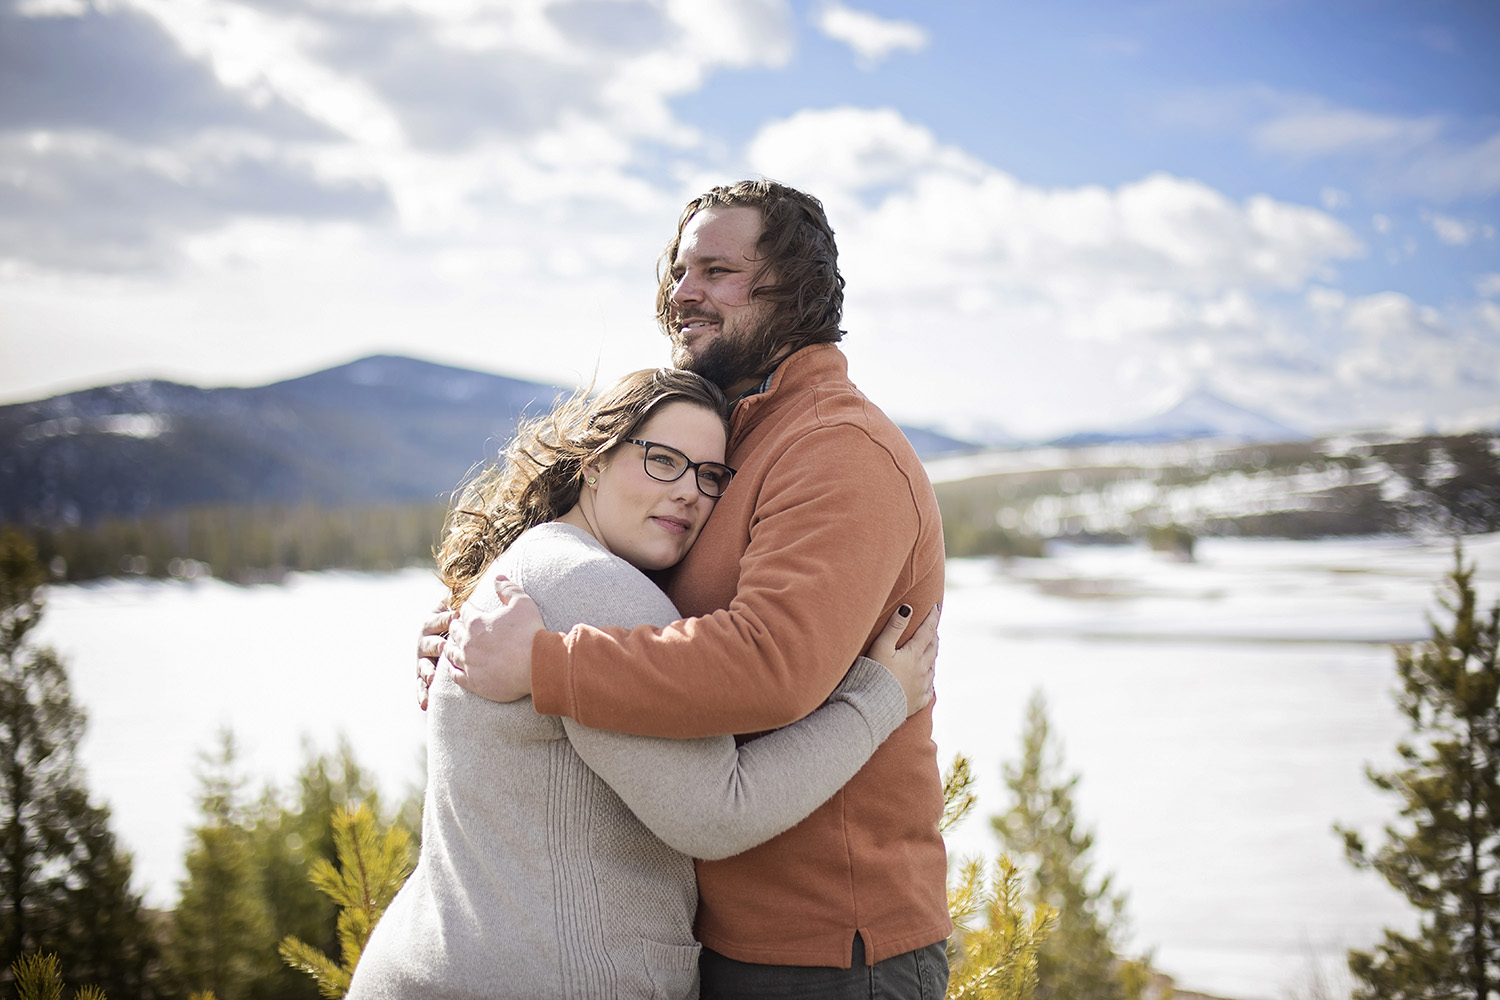 Man hugging his fiancé with snow and mountains behind them